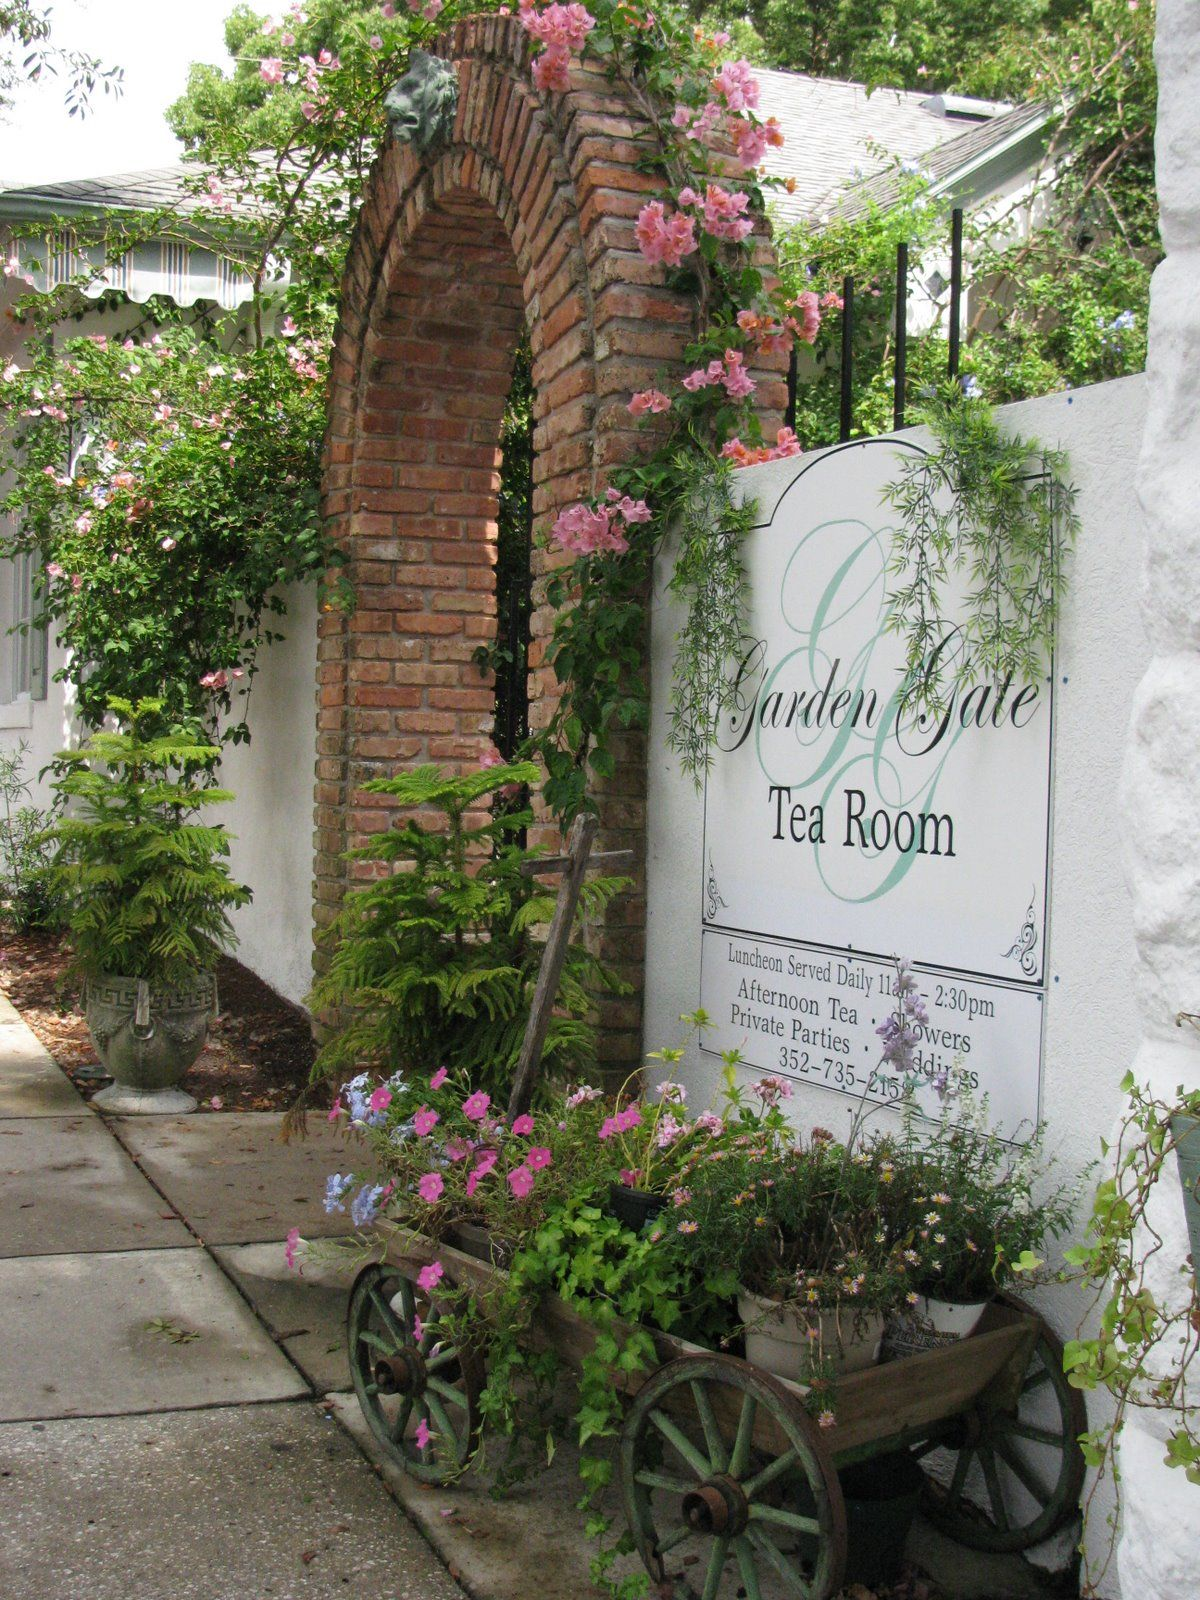 Garden Gate Tea Room 142 East 4th Avenue Mount Dora Florida